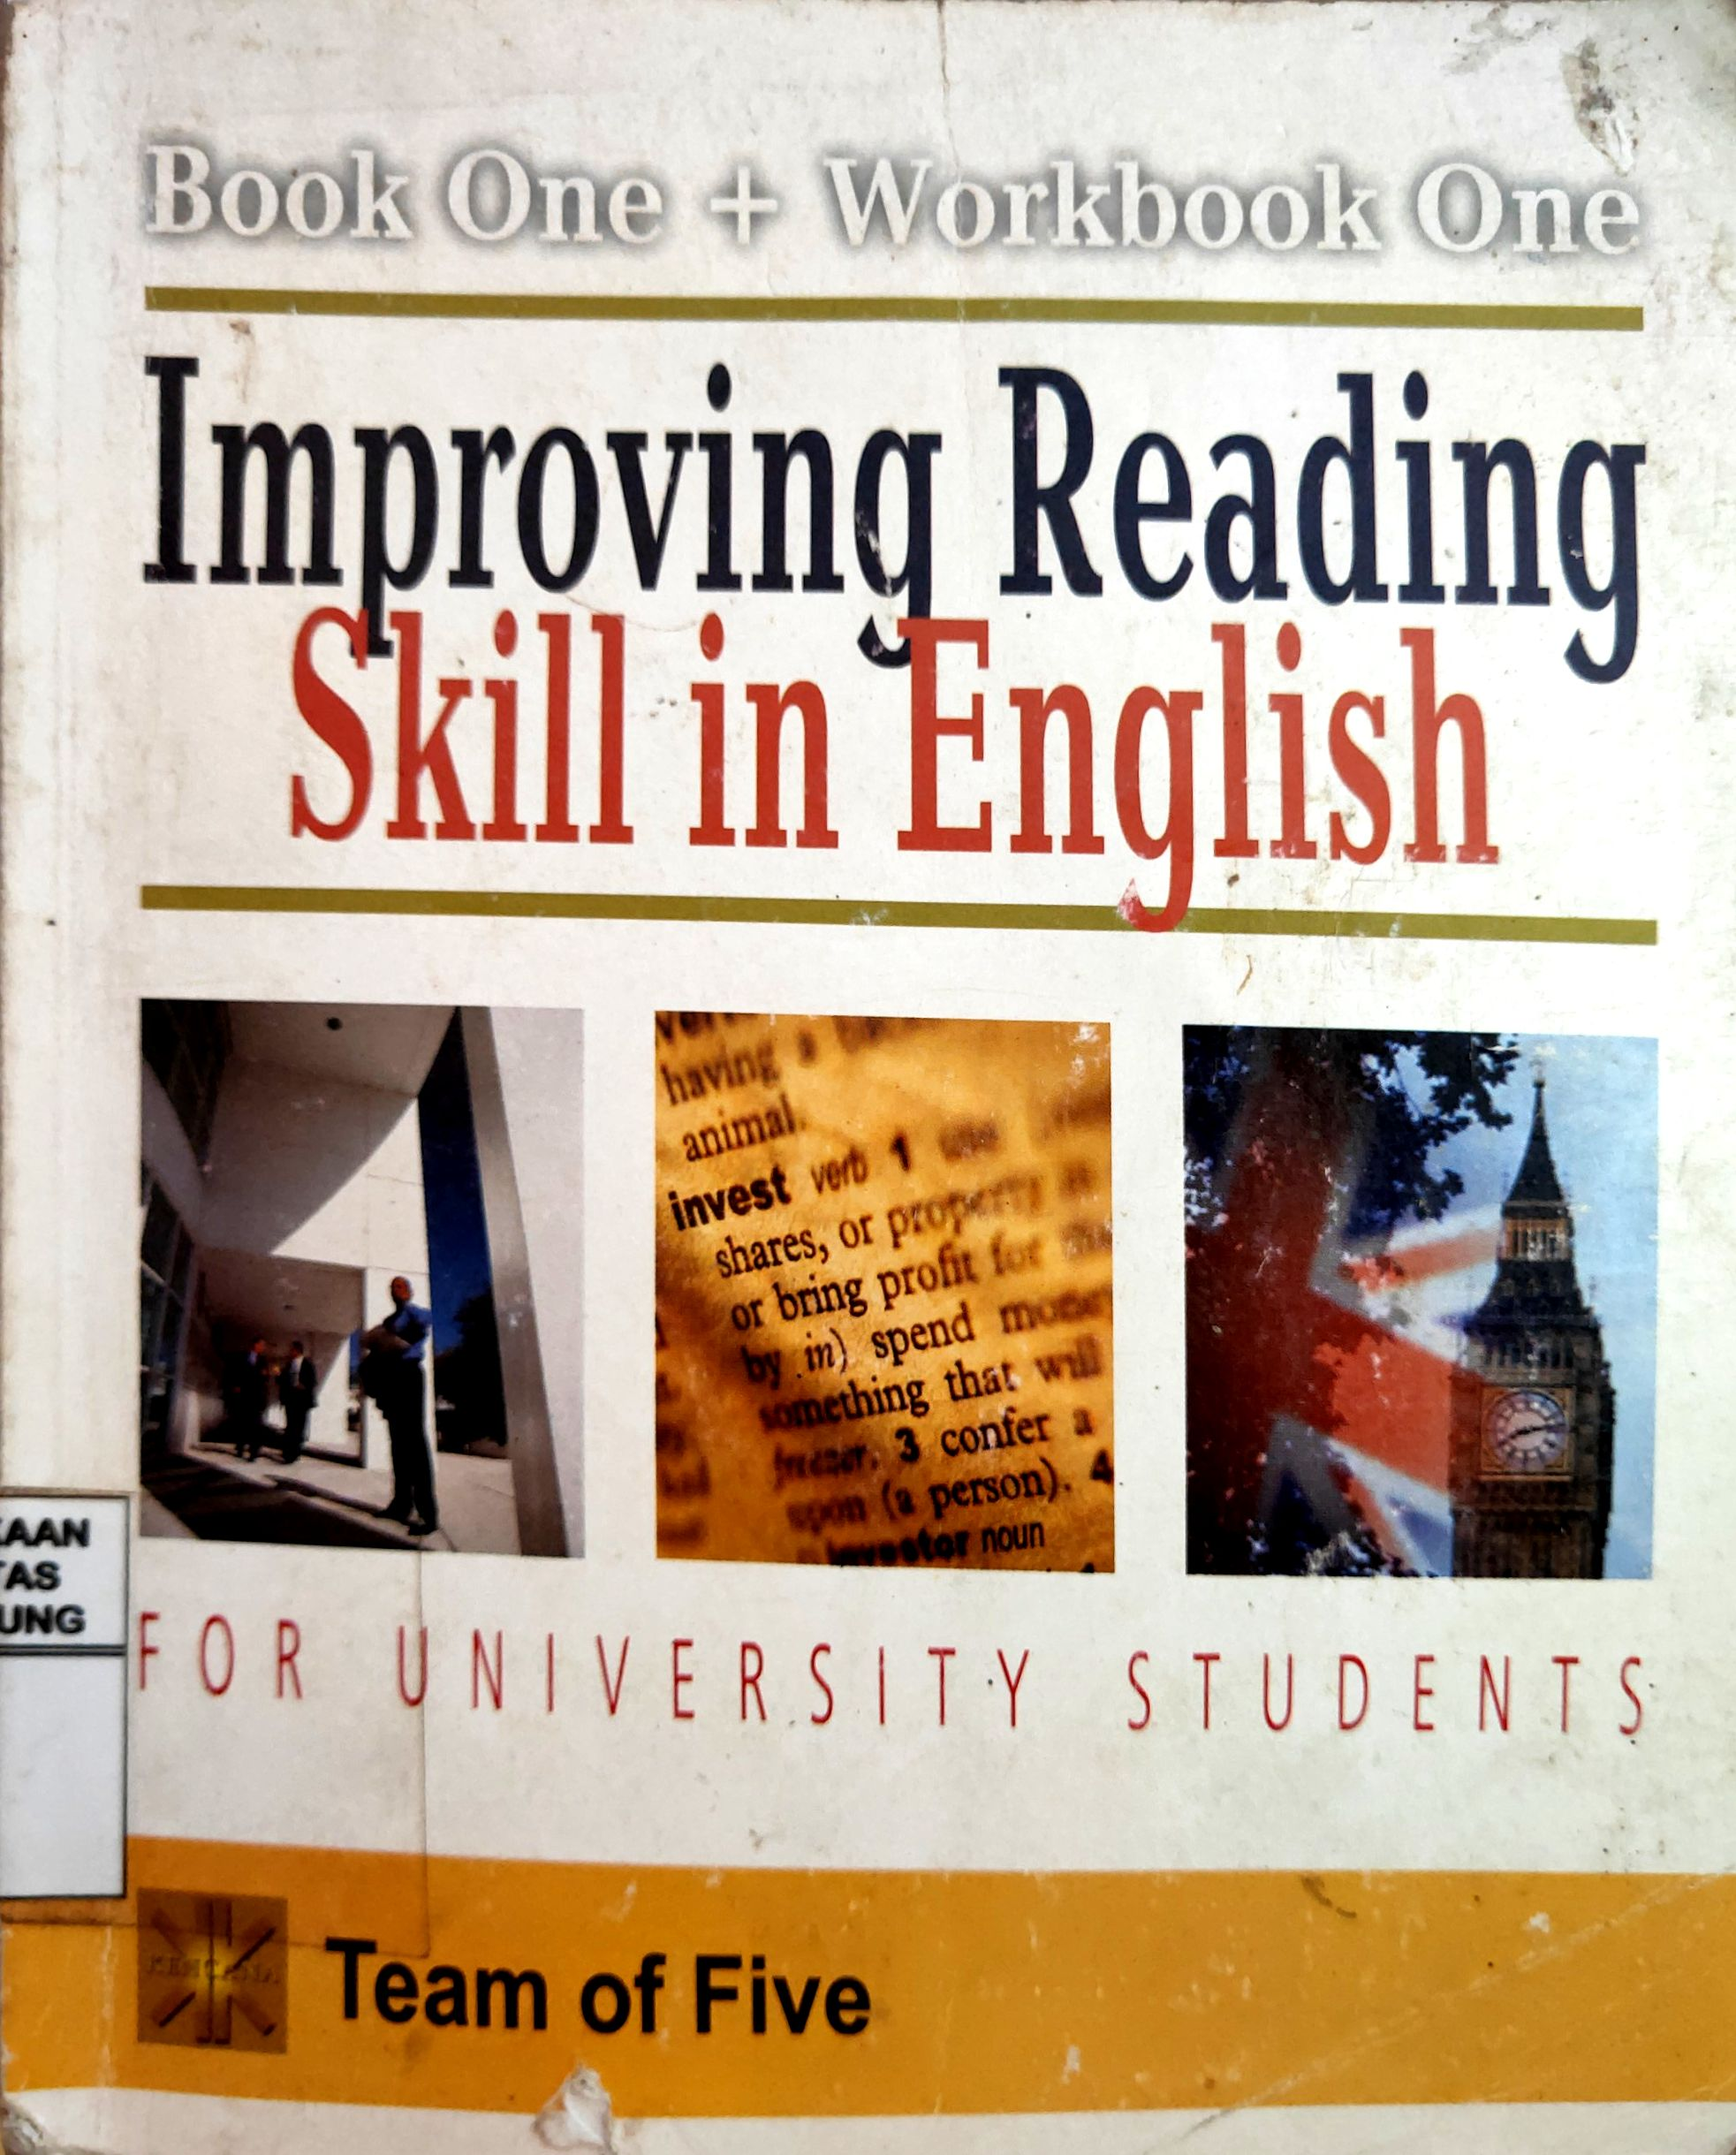 Improving Reading Skill in English for University Student Book One + Workbook One